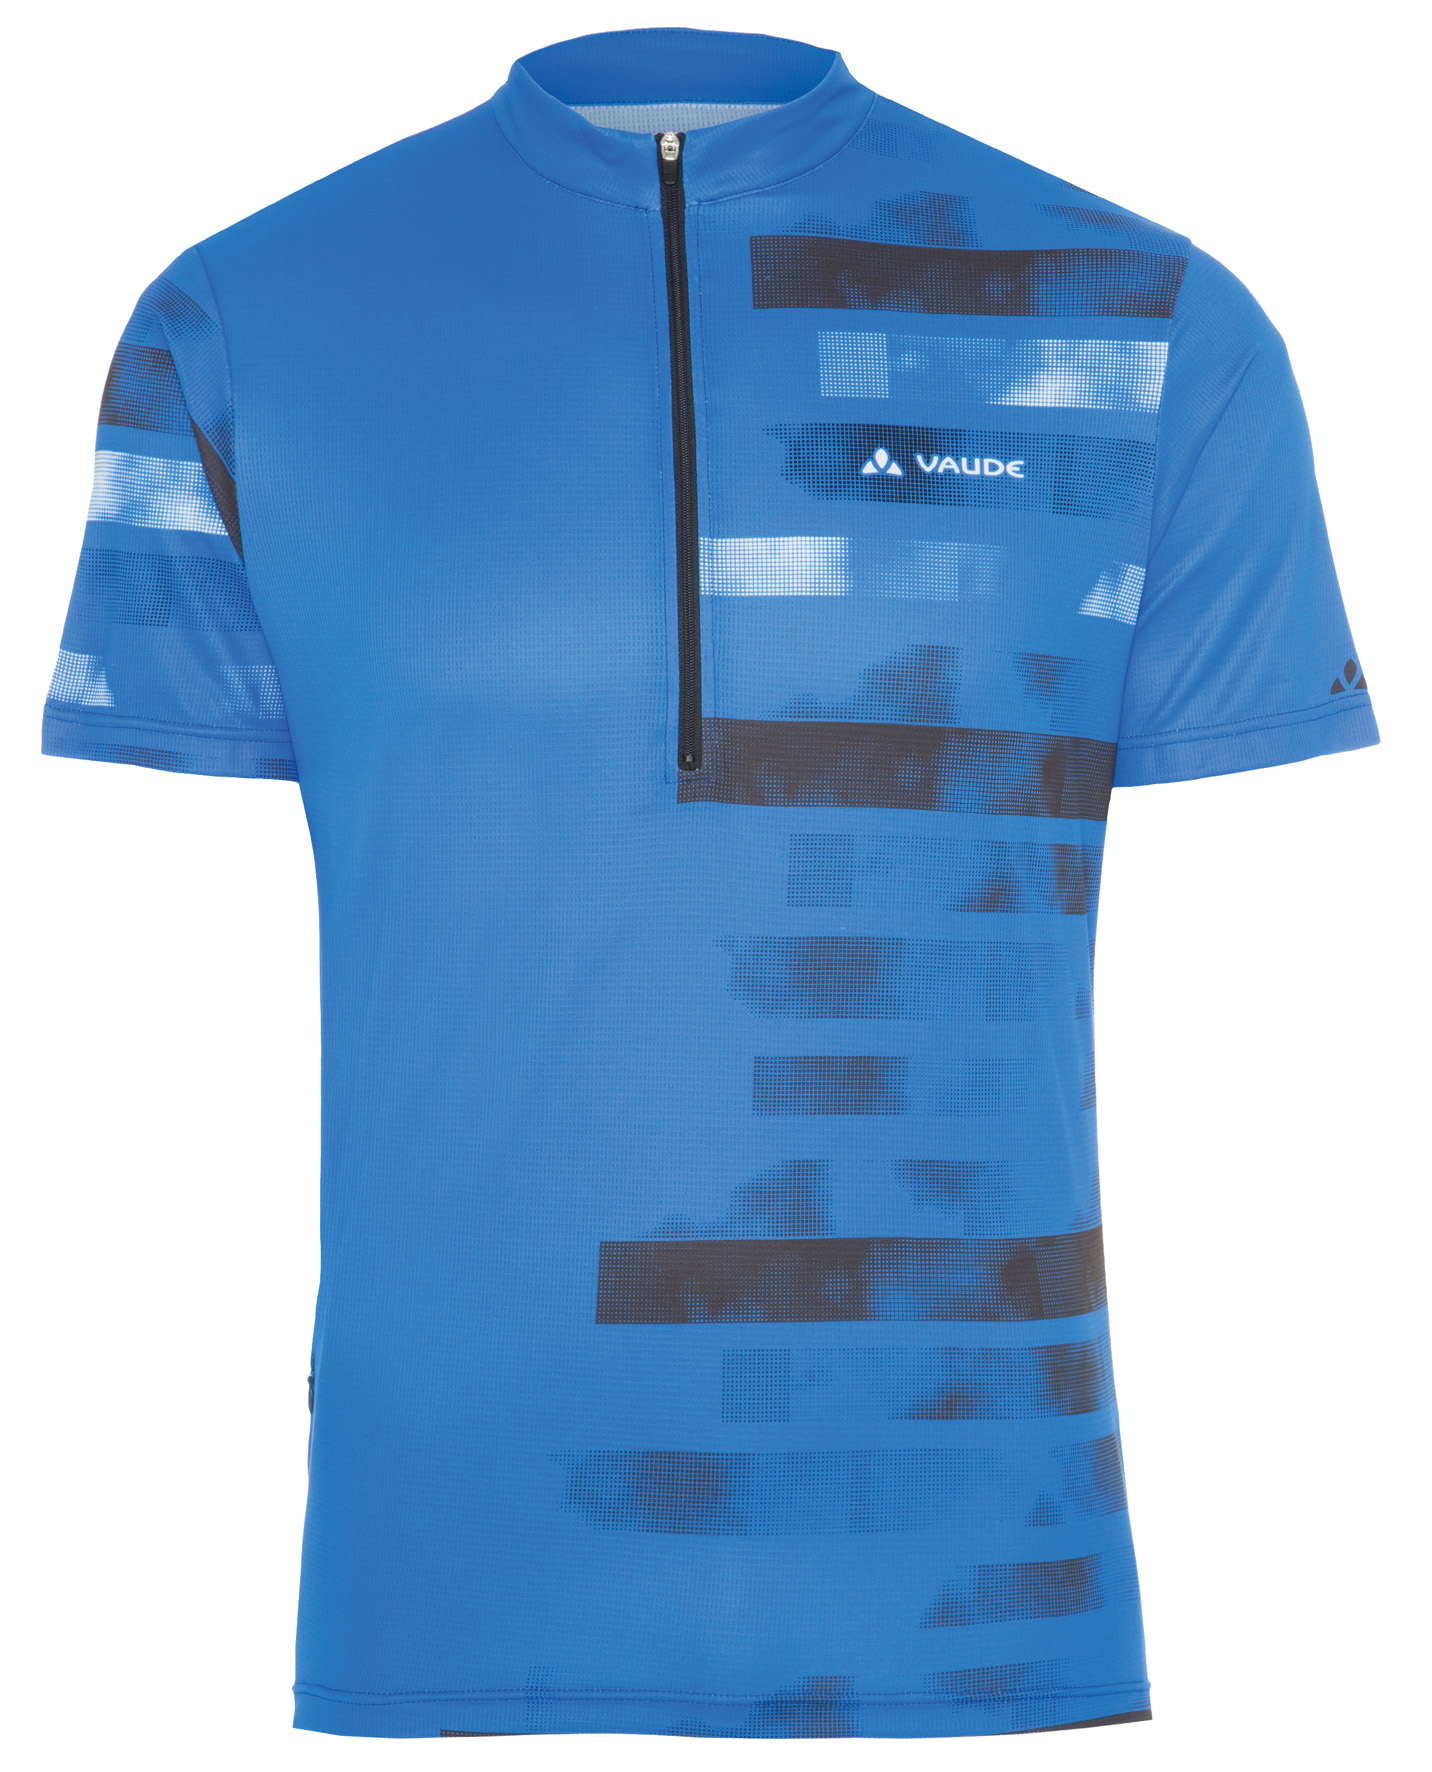 Men´s Tremalzo Shirt hydro blue Größe XXL - schneider-sports